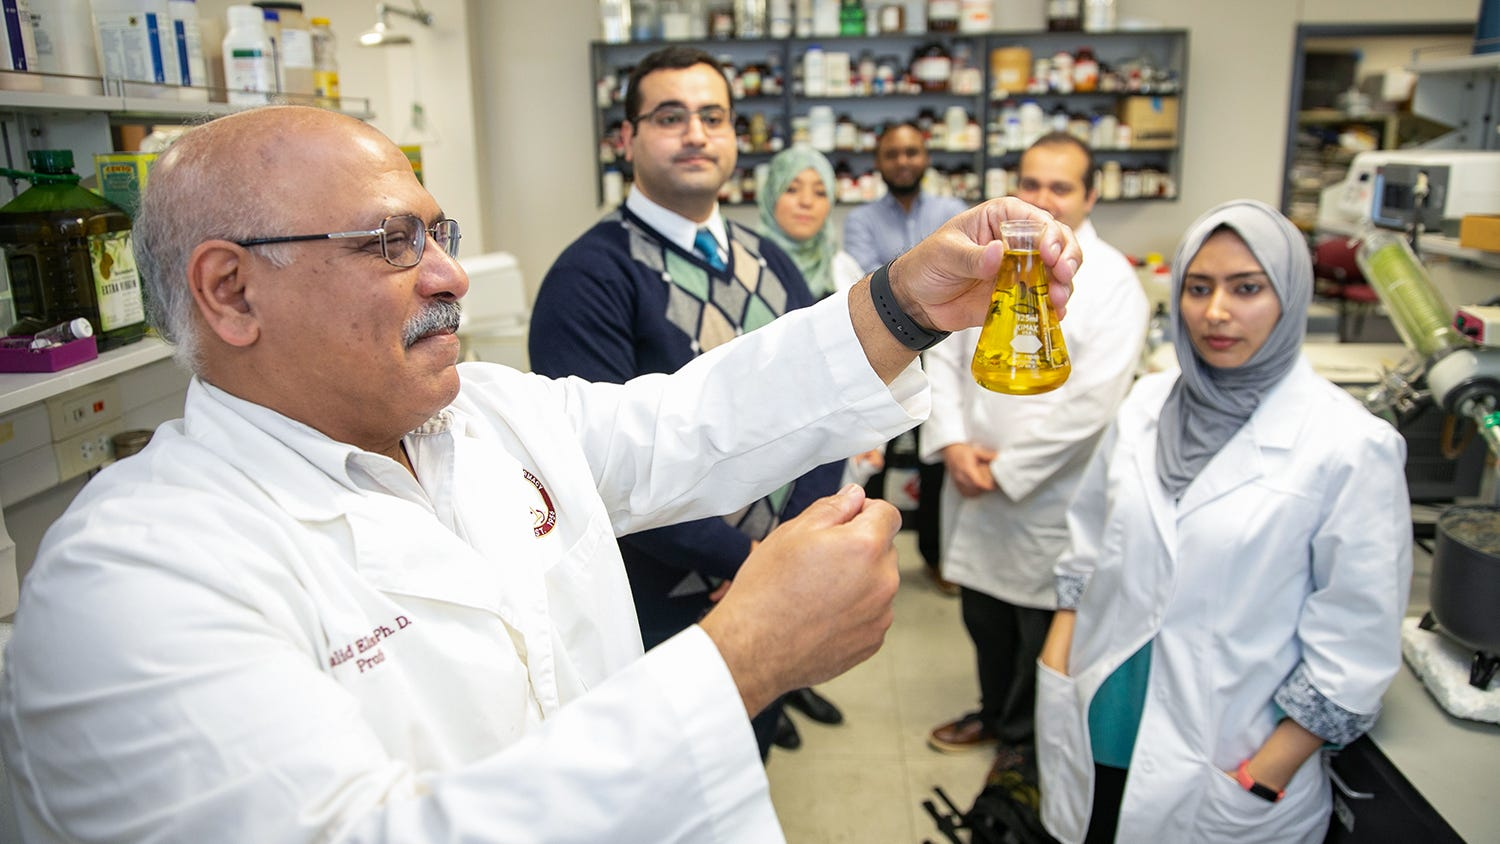 Patent awarded for ULM professor's research into olive oil treatment for breast cancer